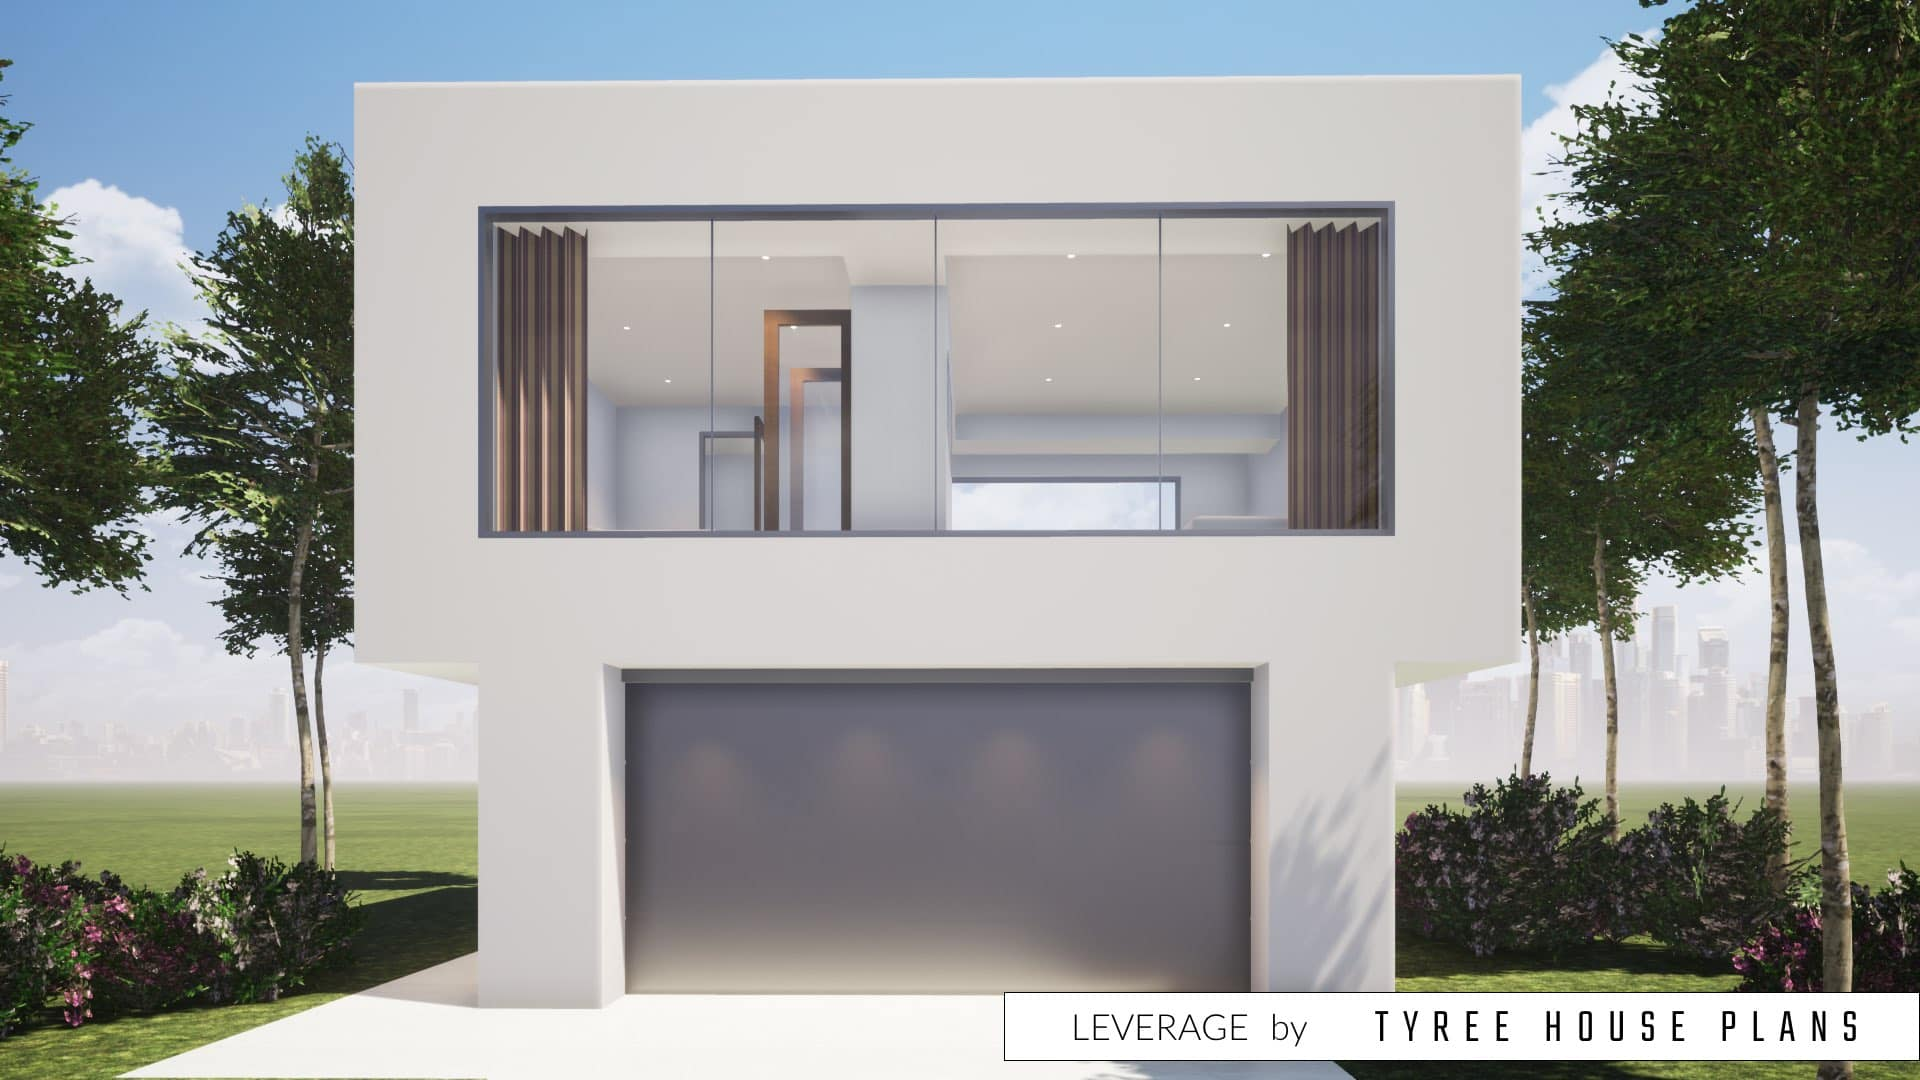 Leverage House Plan by Tyree House Plans